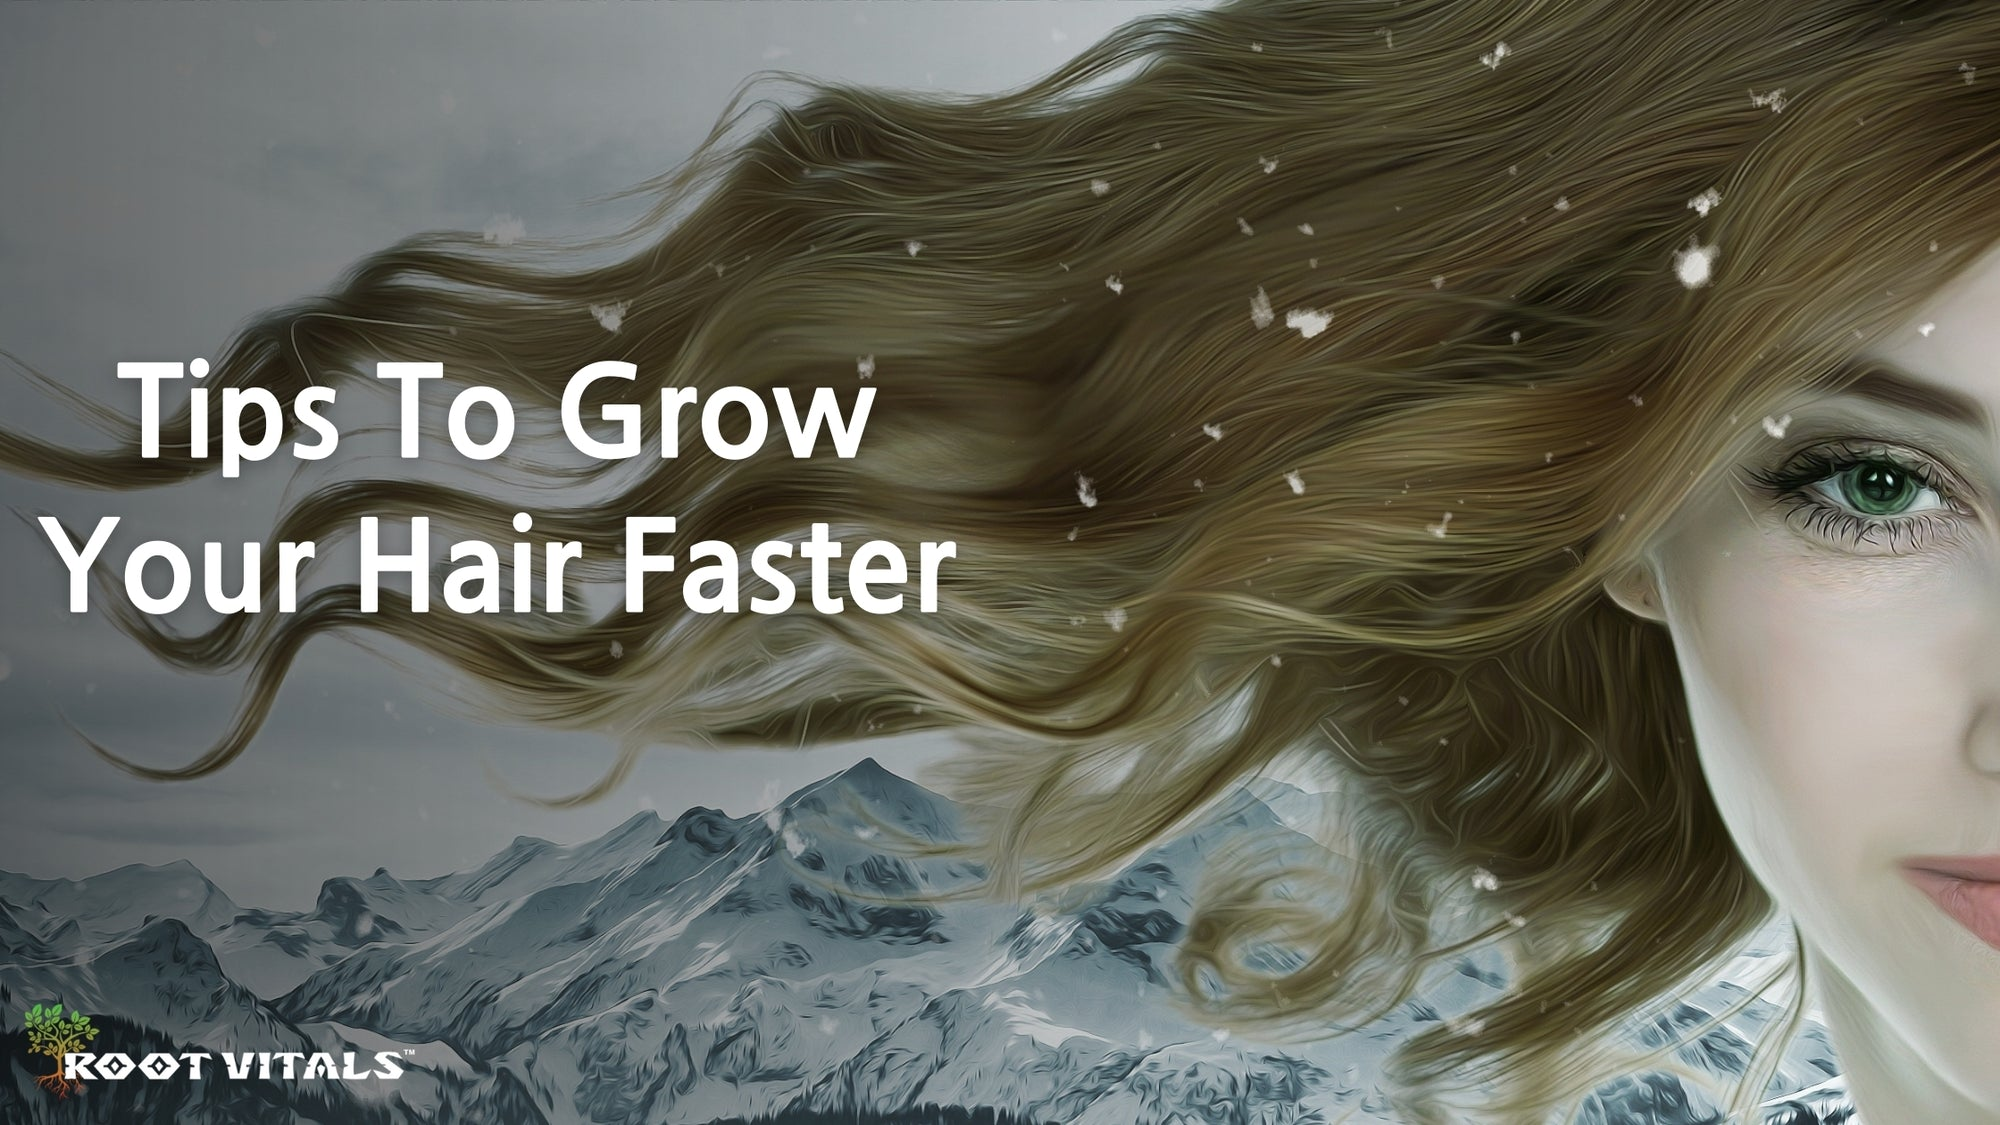 Tips To Grow Your Hair Faster